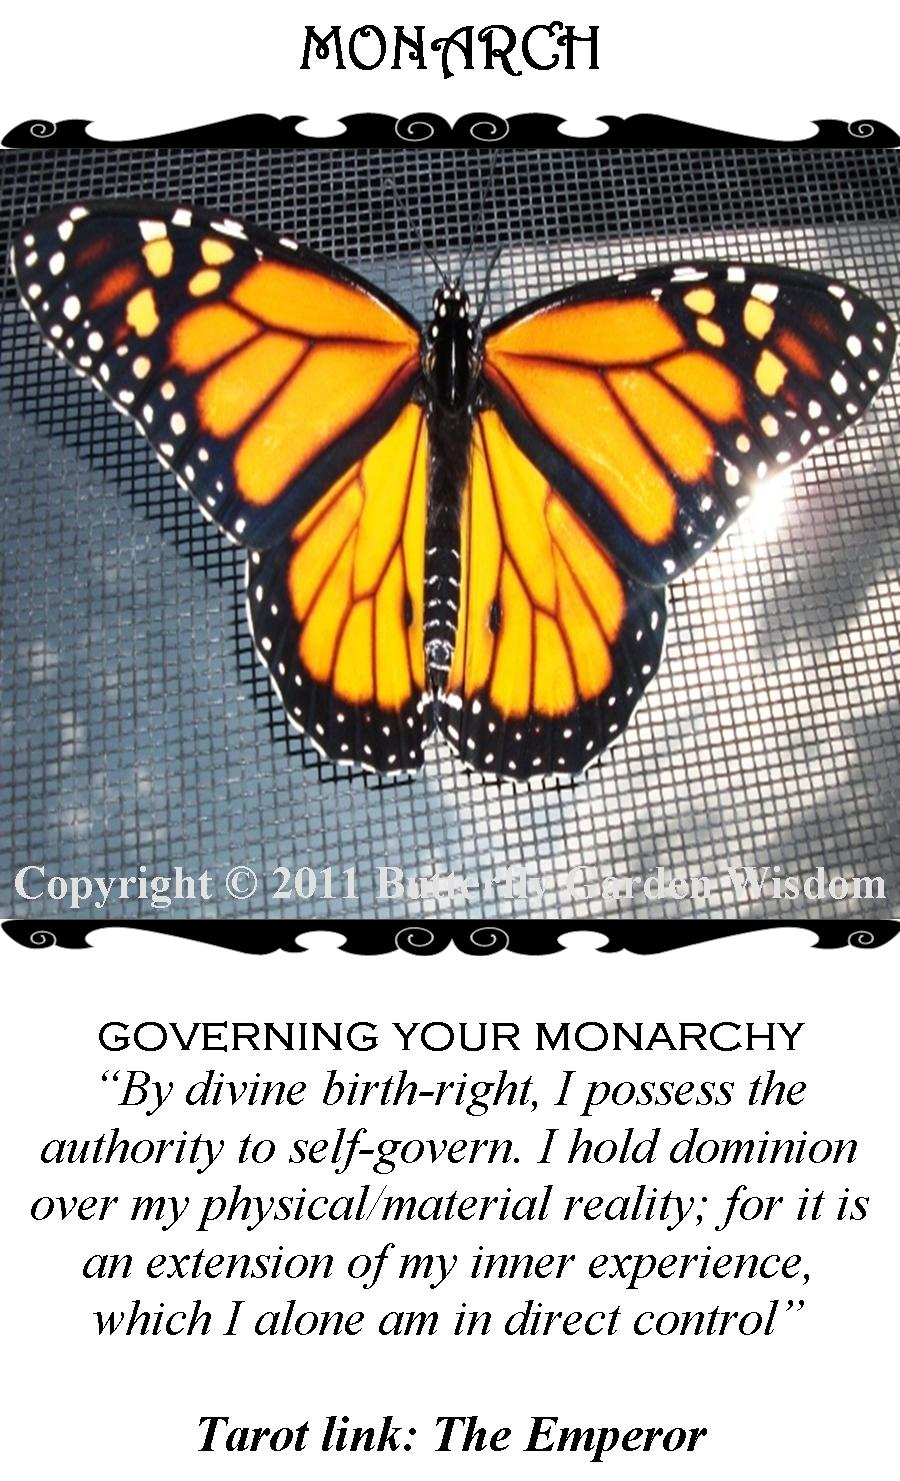 Monarch/The Emperor (Tarot Link)